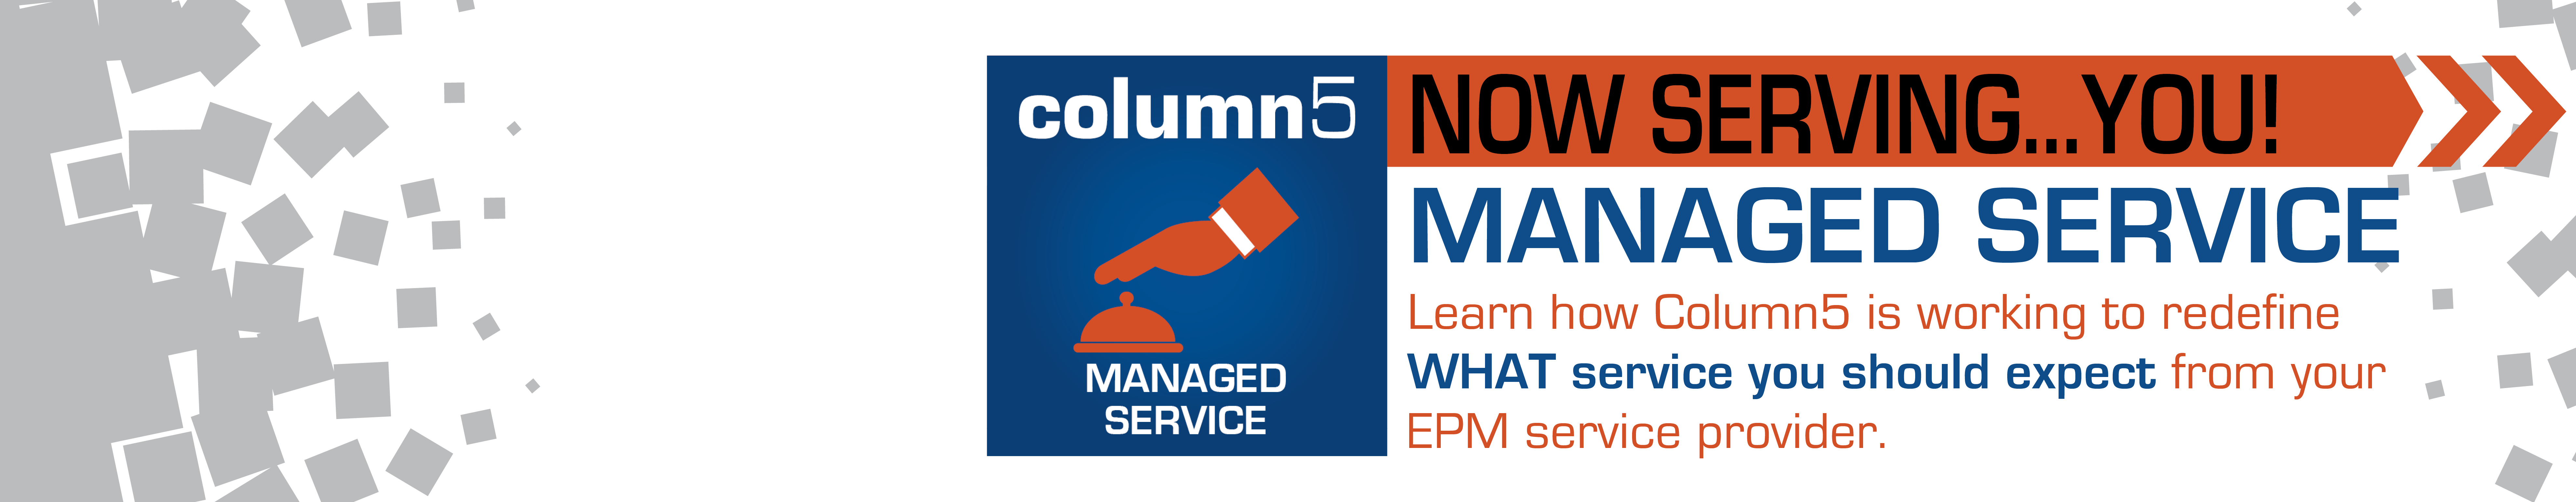 Just Announced! Column5 Managed Service!